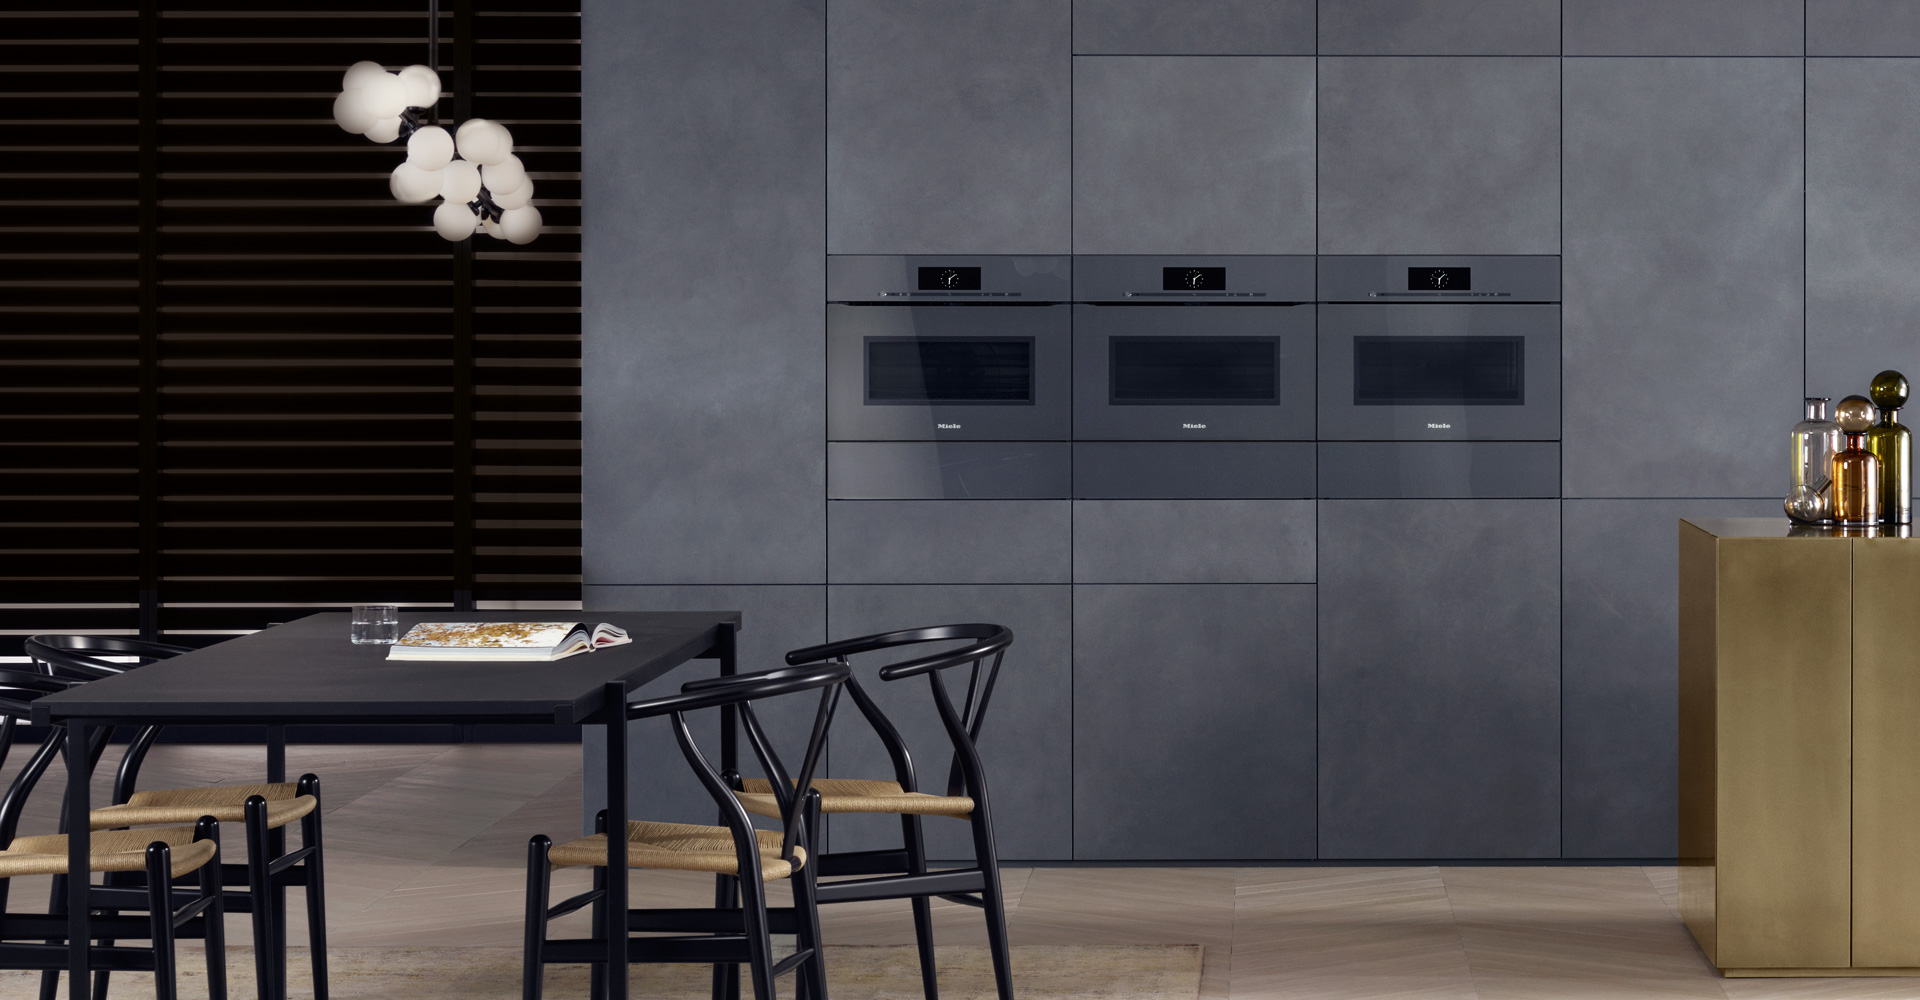 The Handleless Design Line For Your Premium Kitchen. Miele. For Everything  You Really Love.